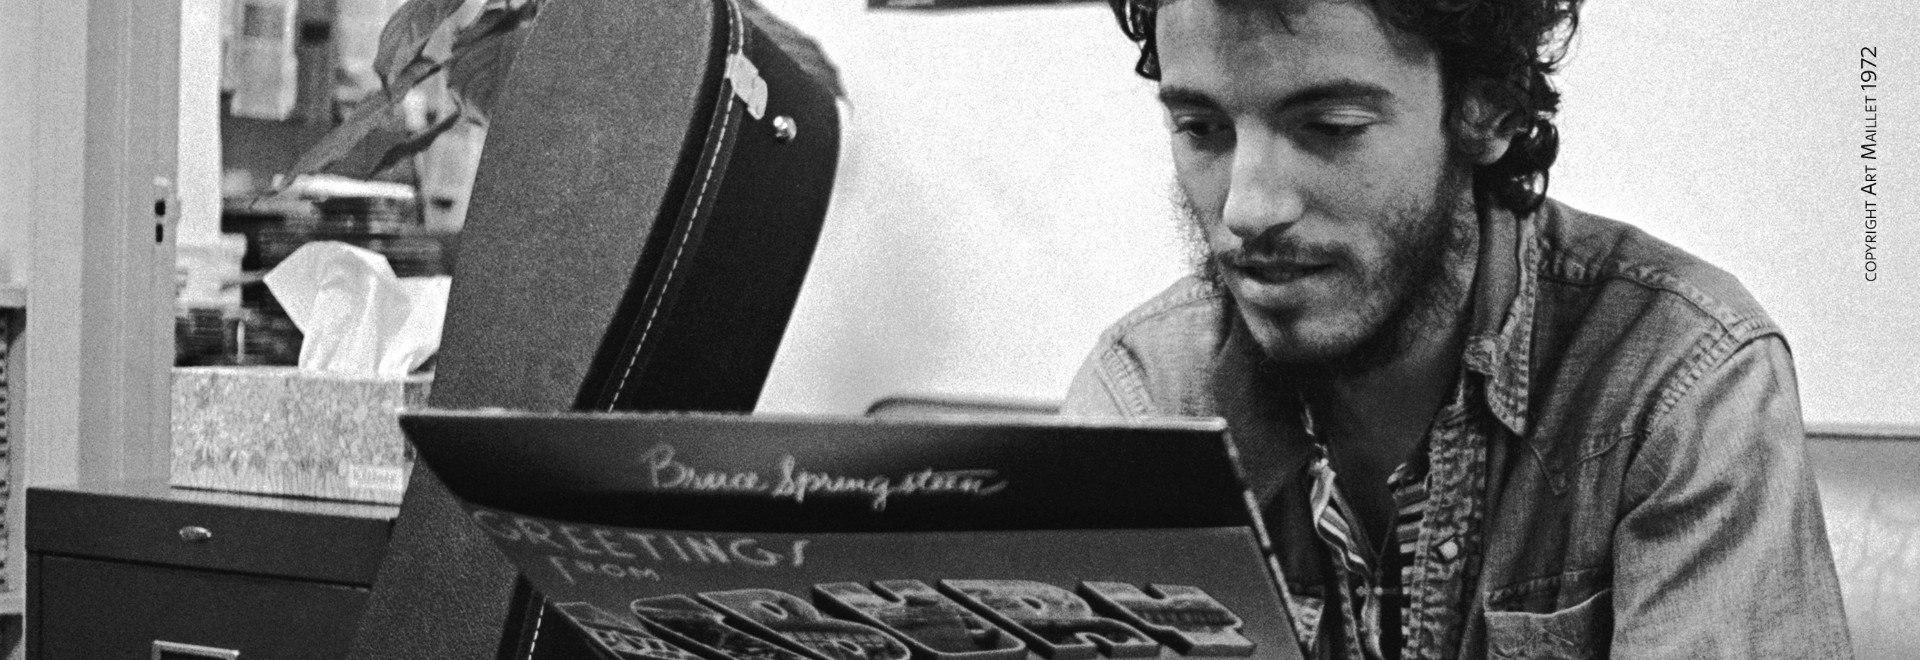 Bruce Springsteen - In His Own Words